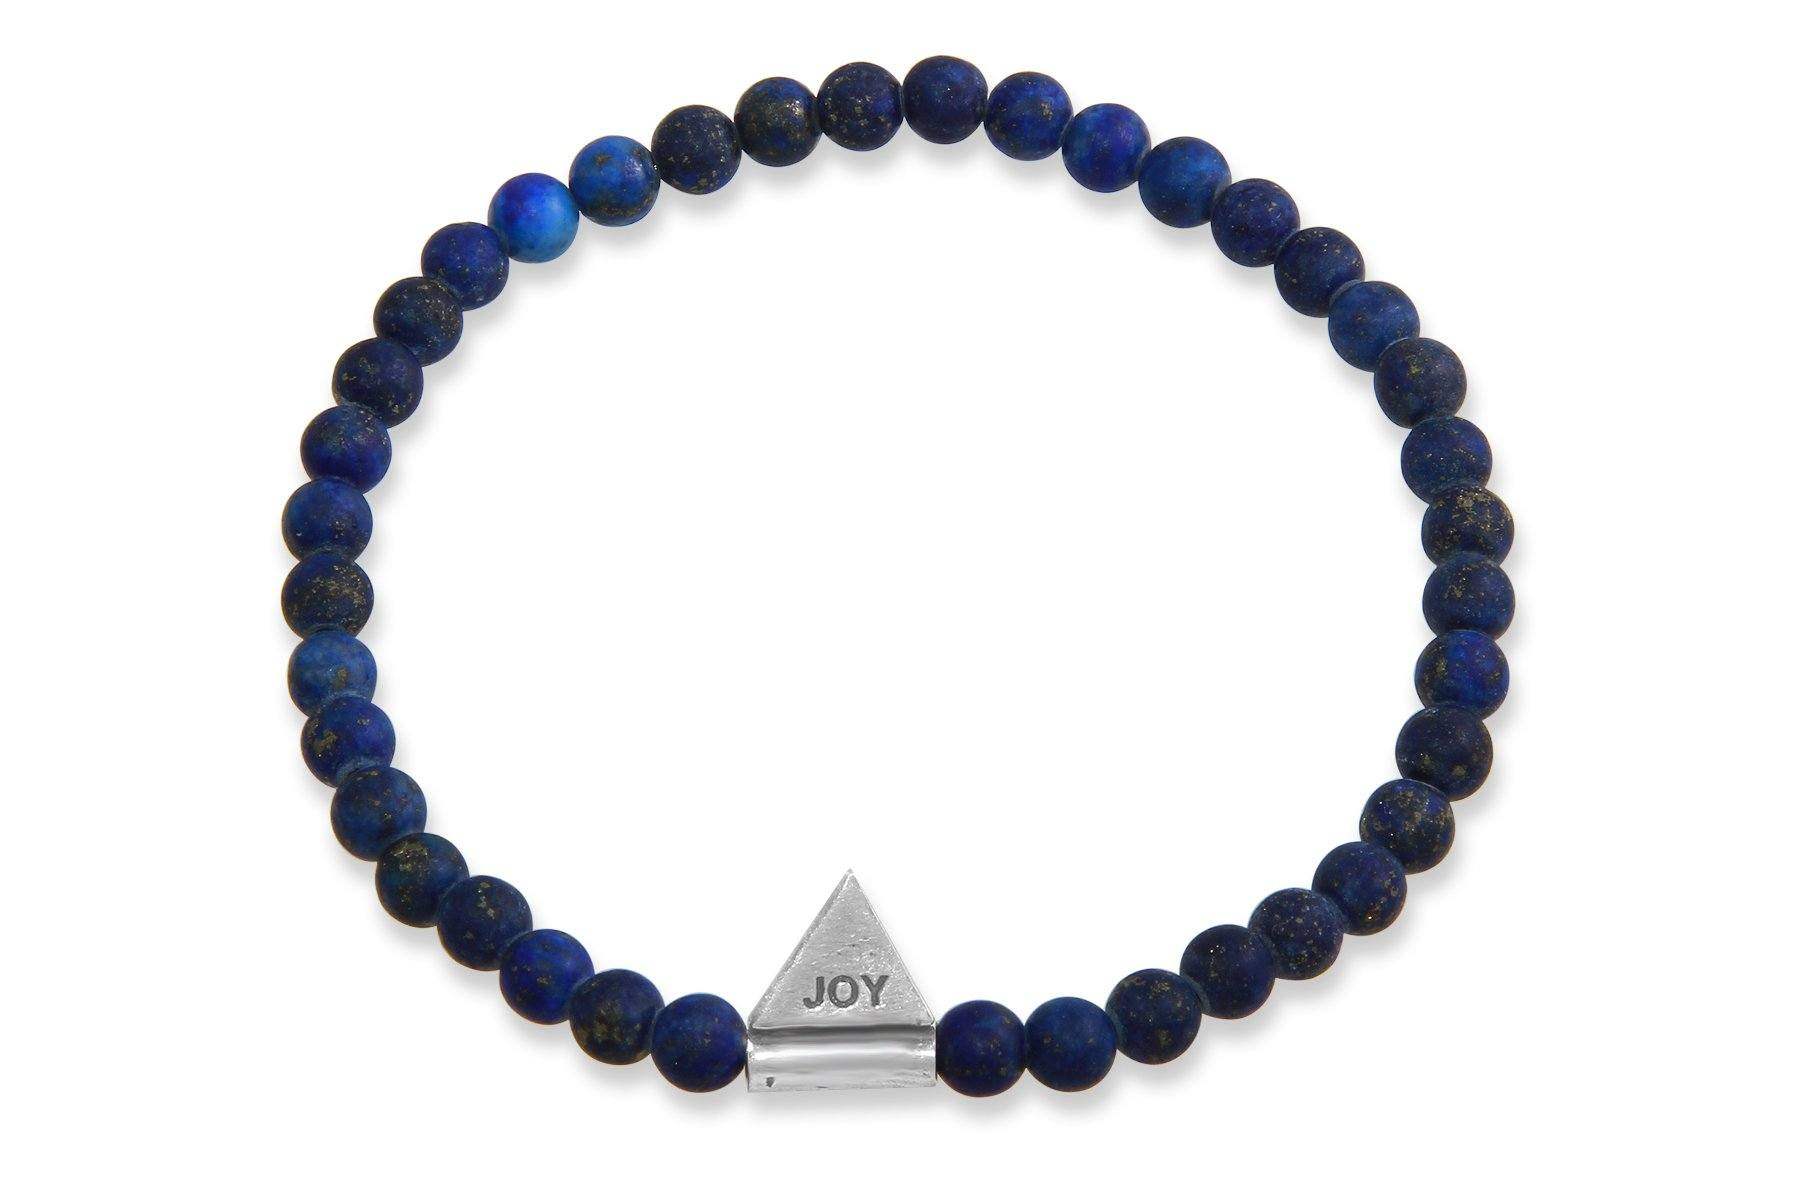 InCompass JOY bracelet - lapis lazuli and sterling silver - Amanda K Lockrow